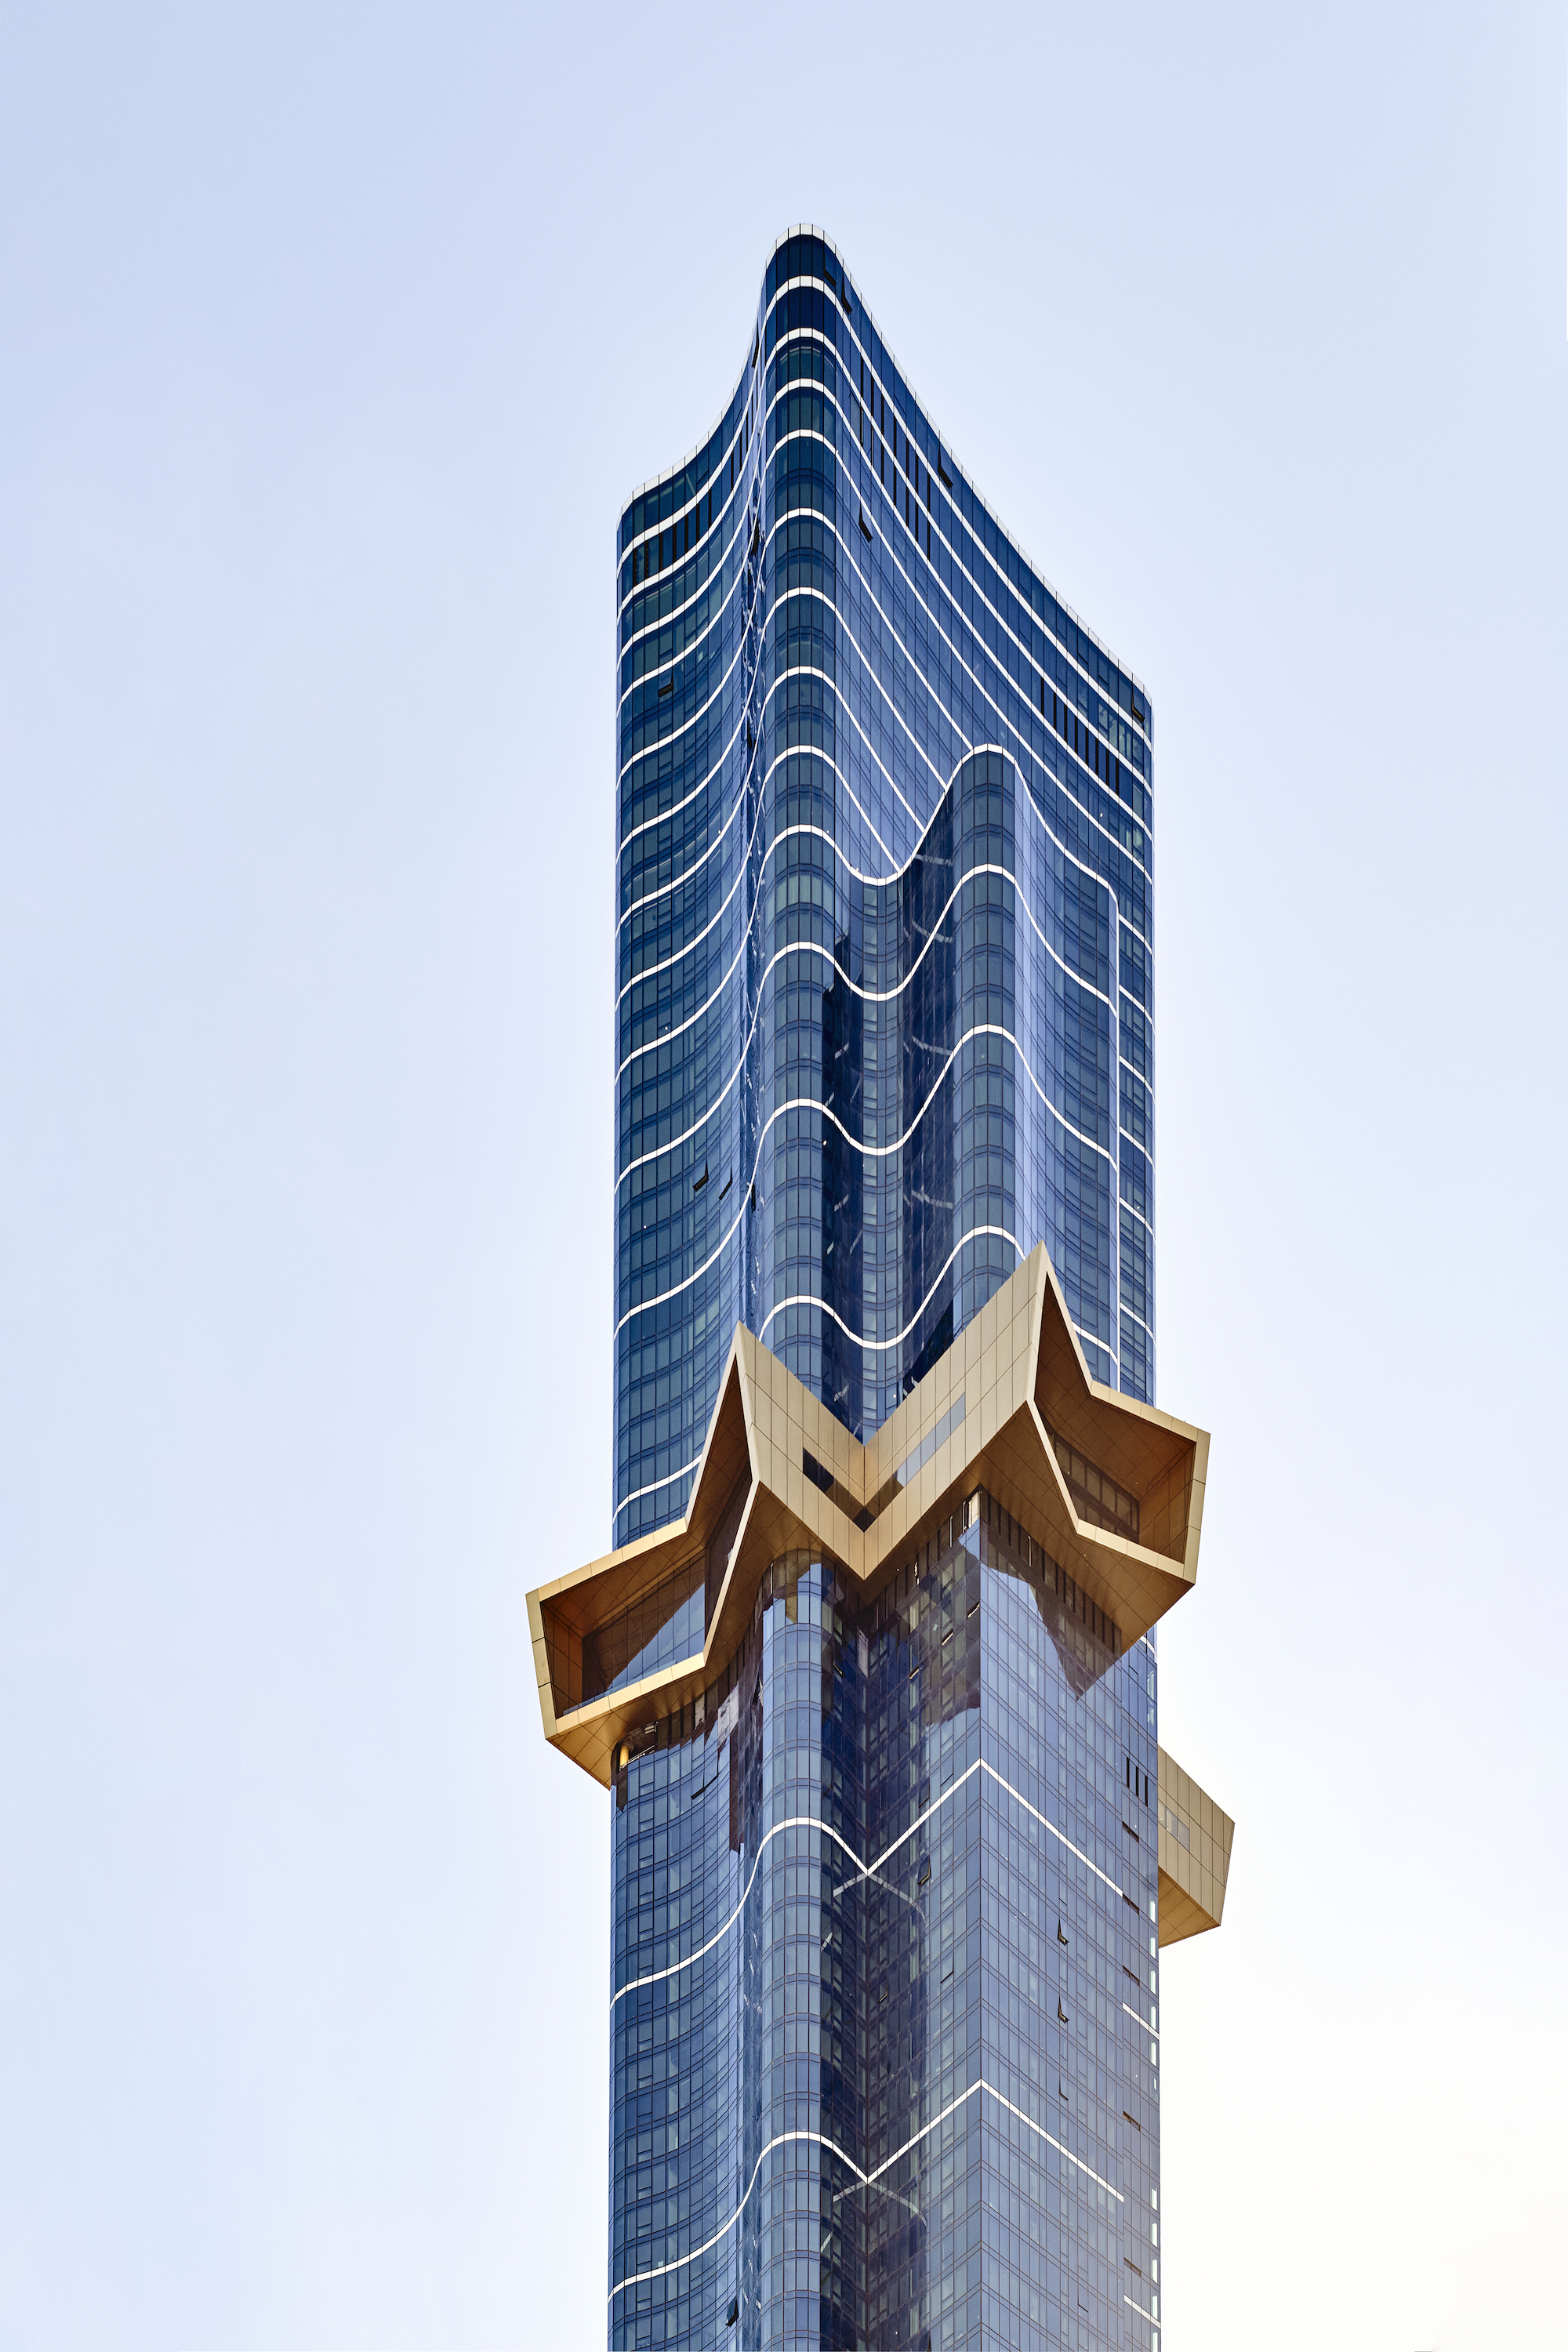 Australia 108's Starburst is situated roughly two-thirds of the way up the building